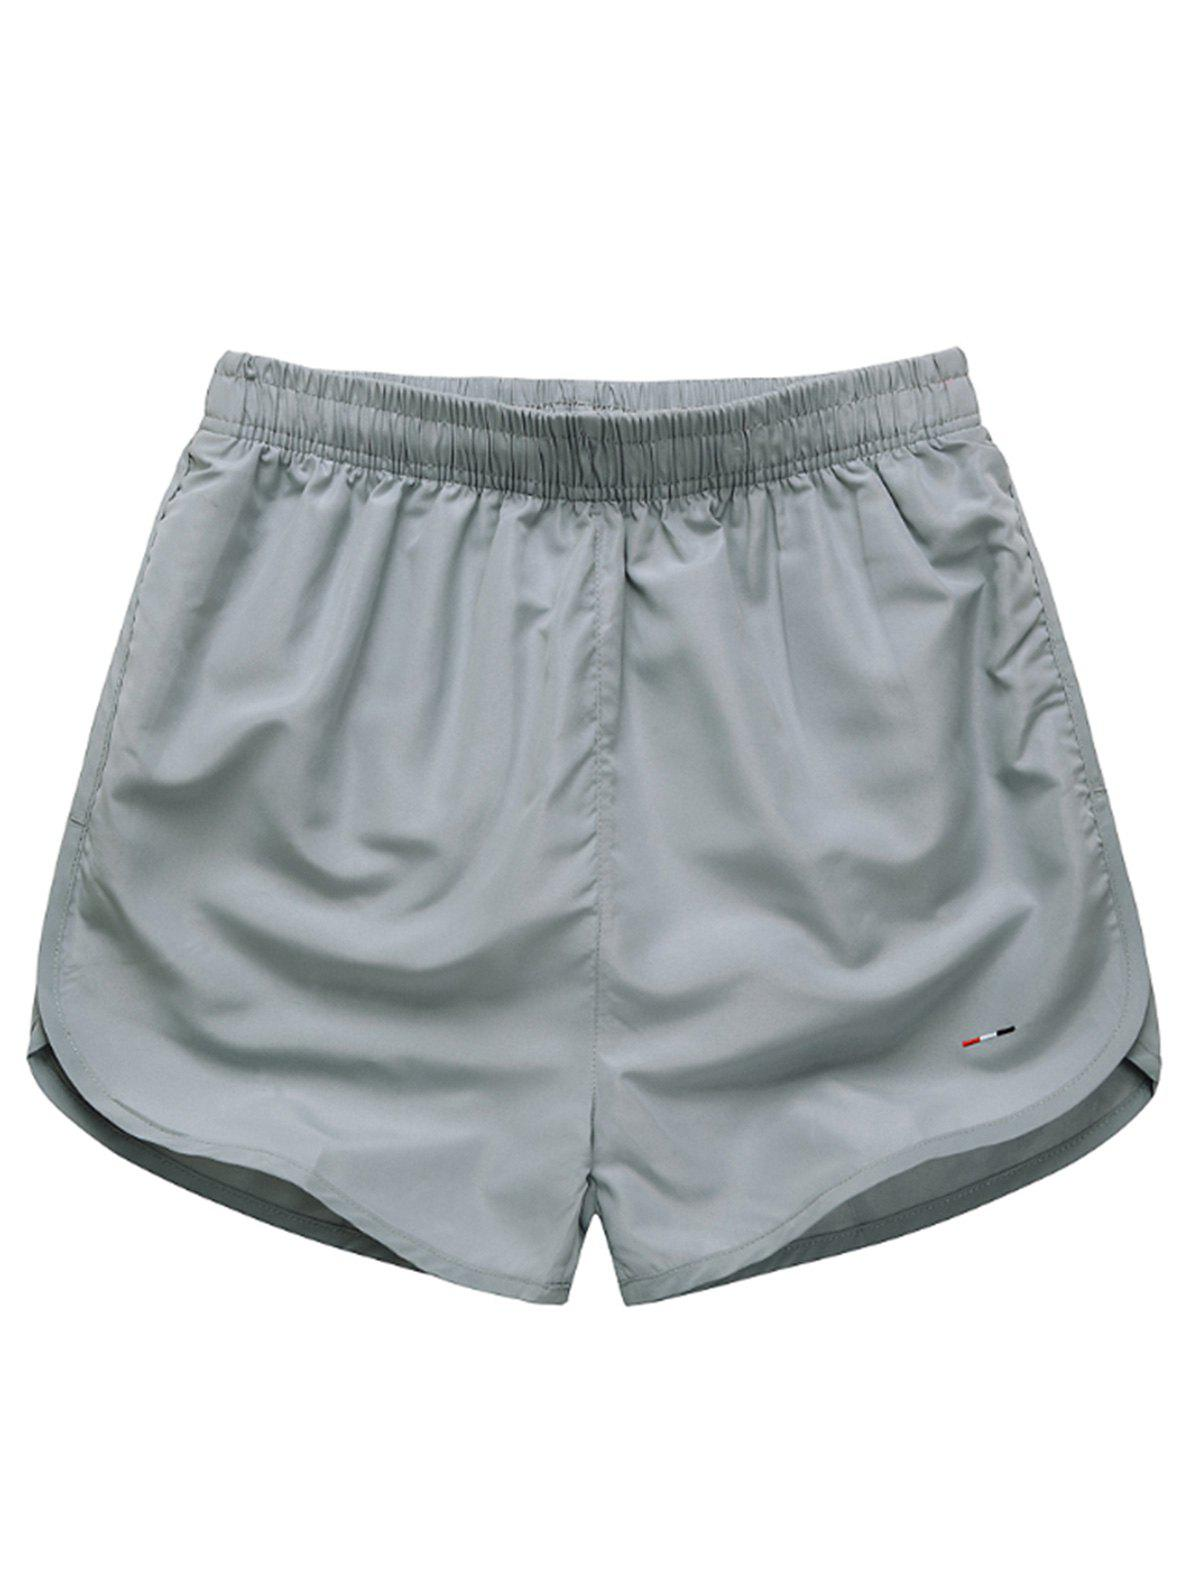 Mesh Lined Dolphin Hem Beach Shorts - GRAY 2XL